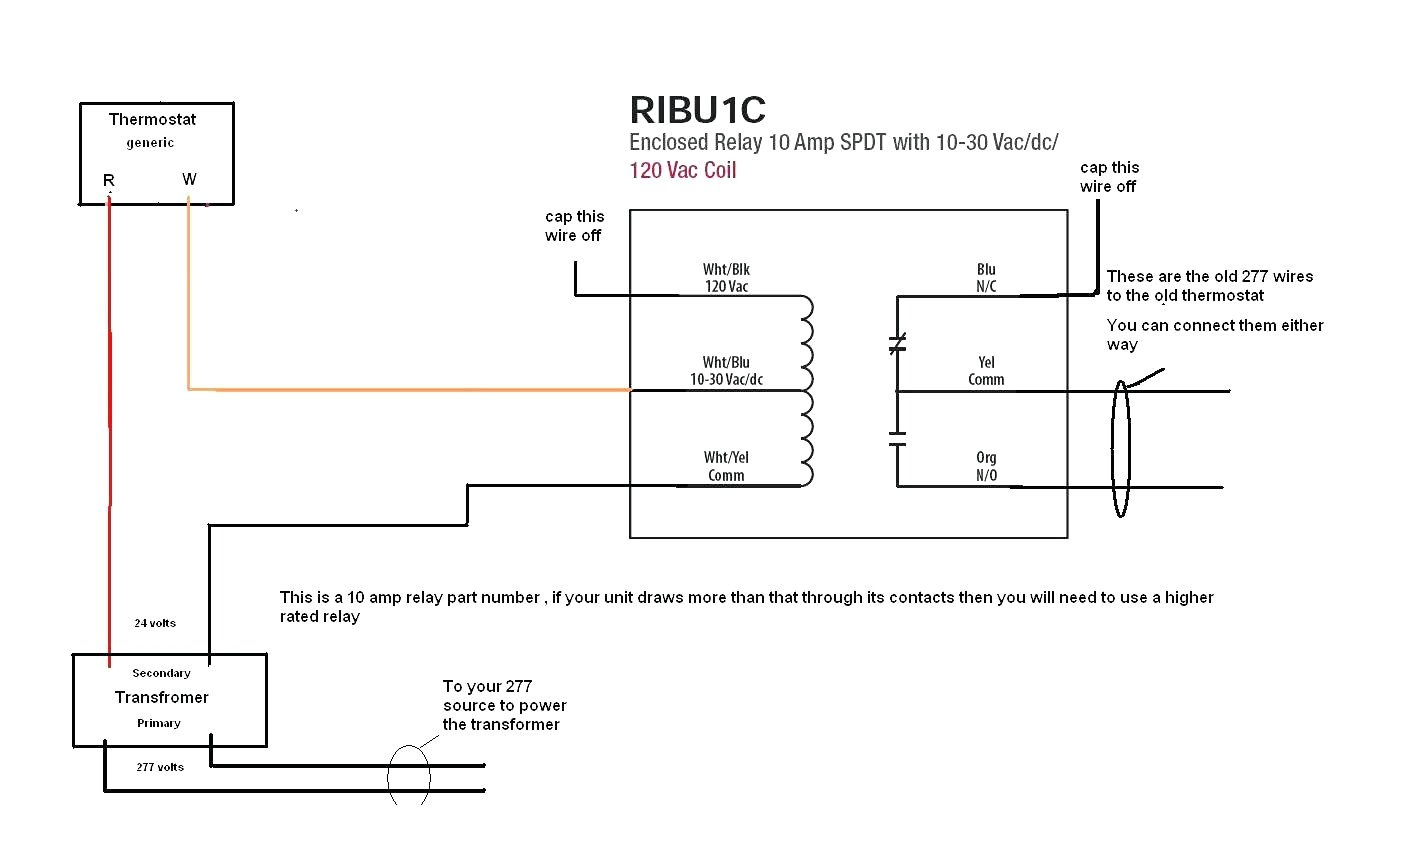 [ANLQ_8698]  DIAGRAM] H1c Rib Relay Wire Diagram FULL Version HD Quality Wire Diagram -  WEBFLOWCHARTDIAGRAMS.BUMBLEWEB.FR | Rib Wire Diagram |  | webflowchartdiagrams.bumbleweb.fr